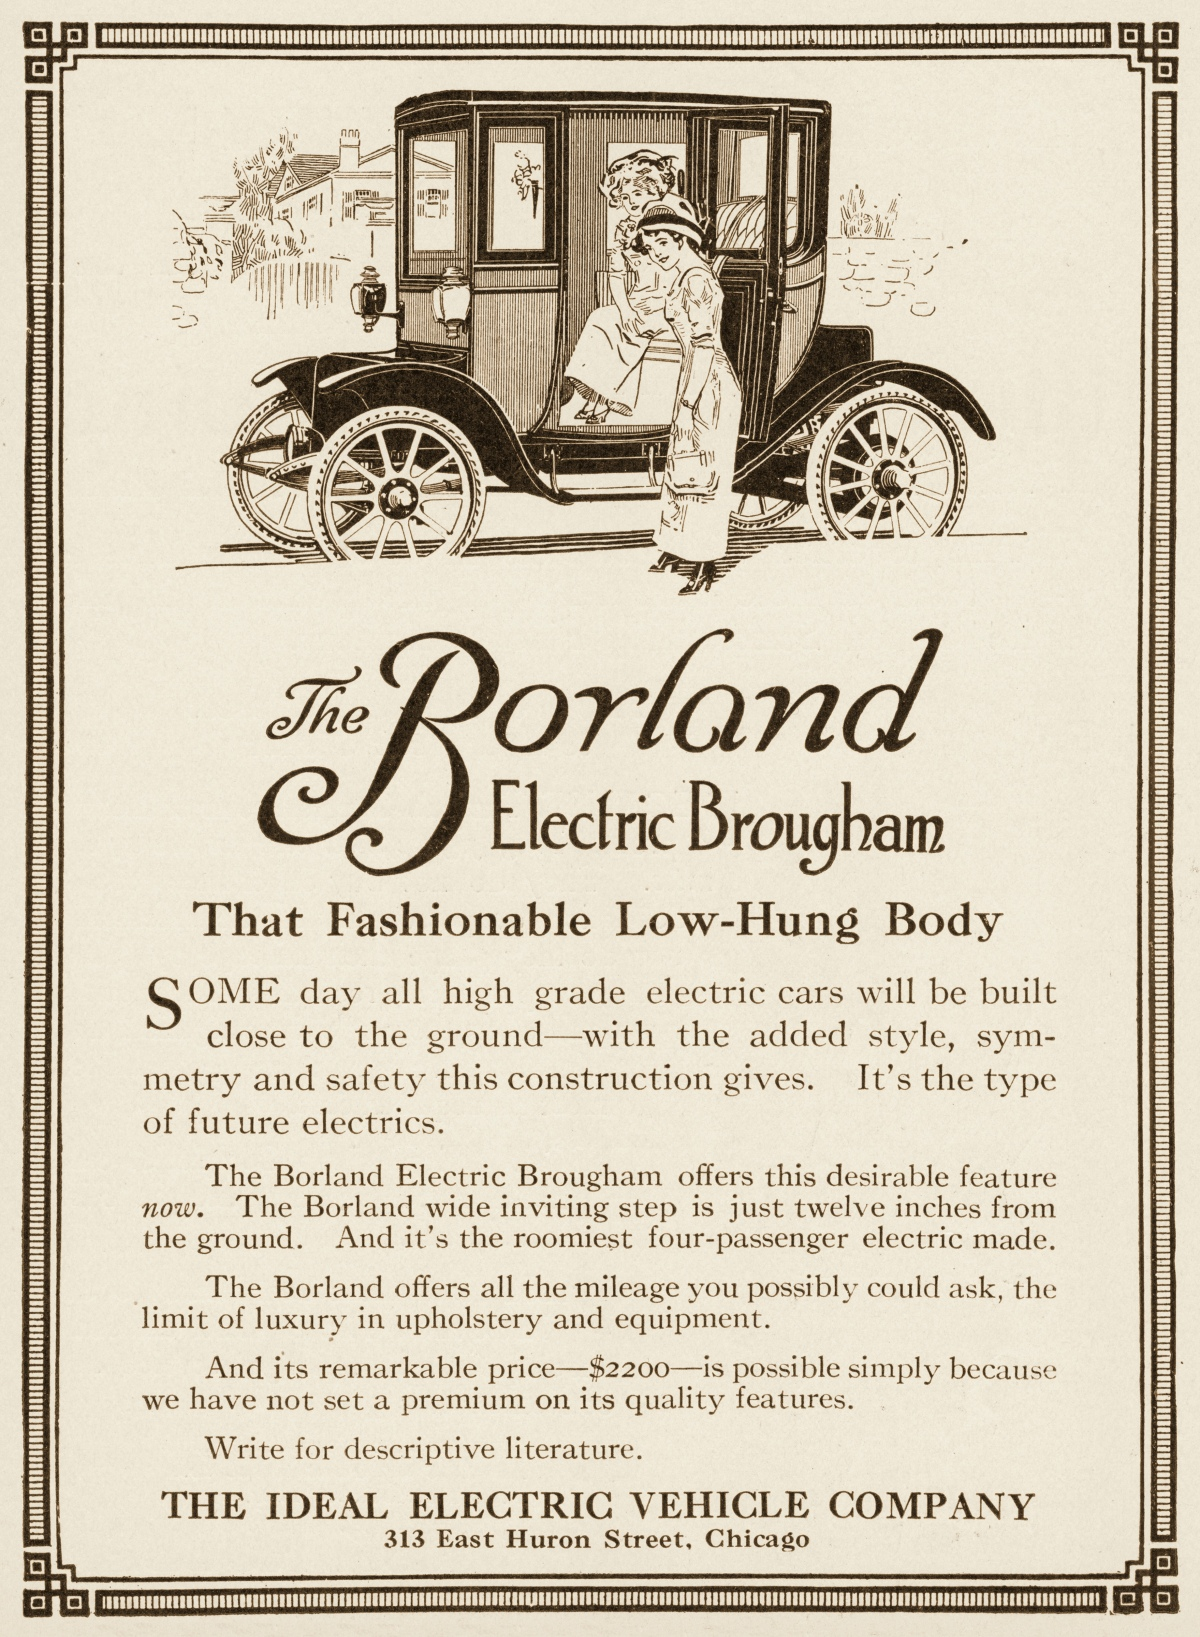 Borland Electric Brougham